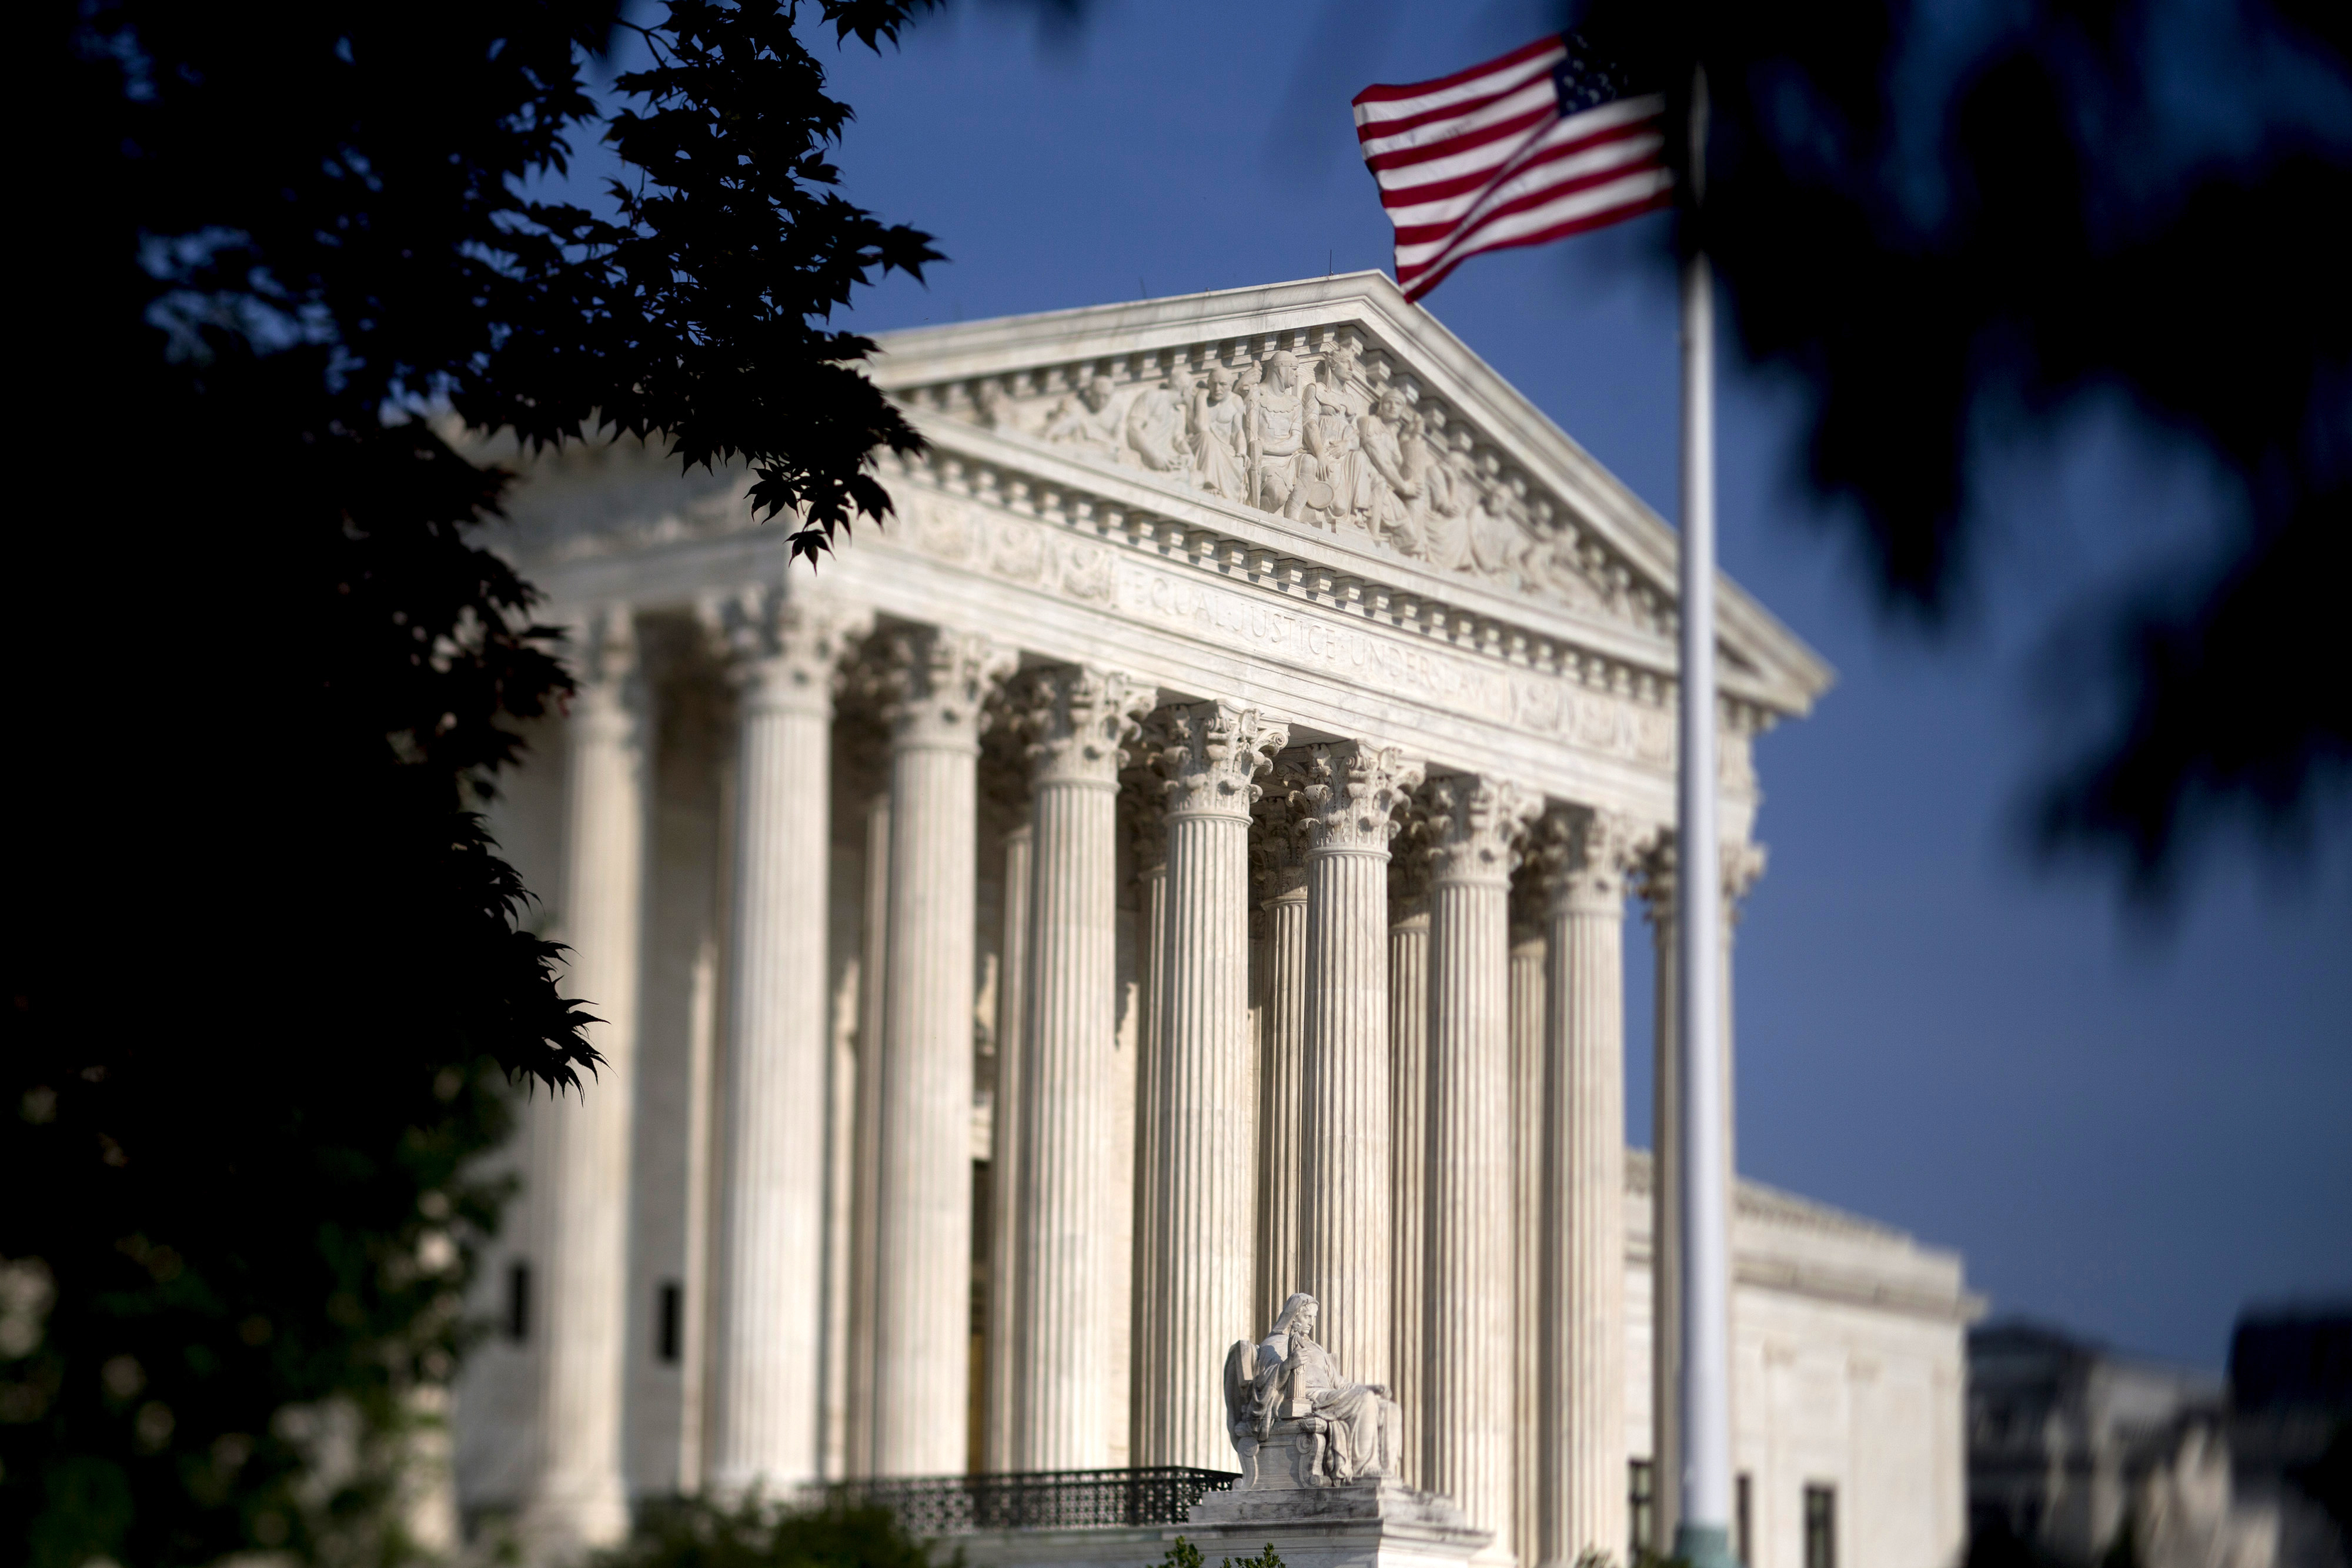 The American flag flies next to the U.S. Supreme Court.